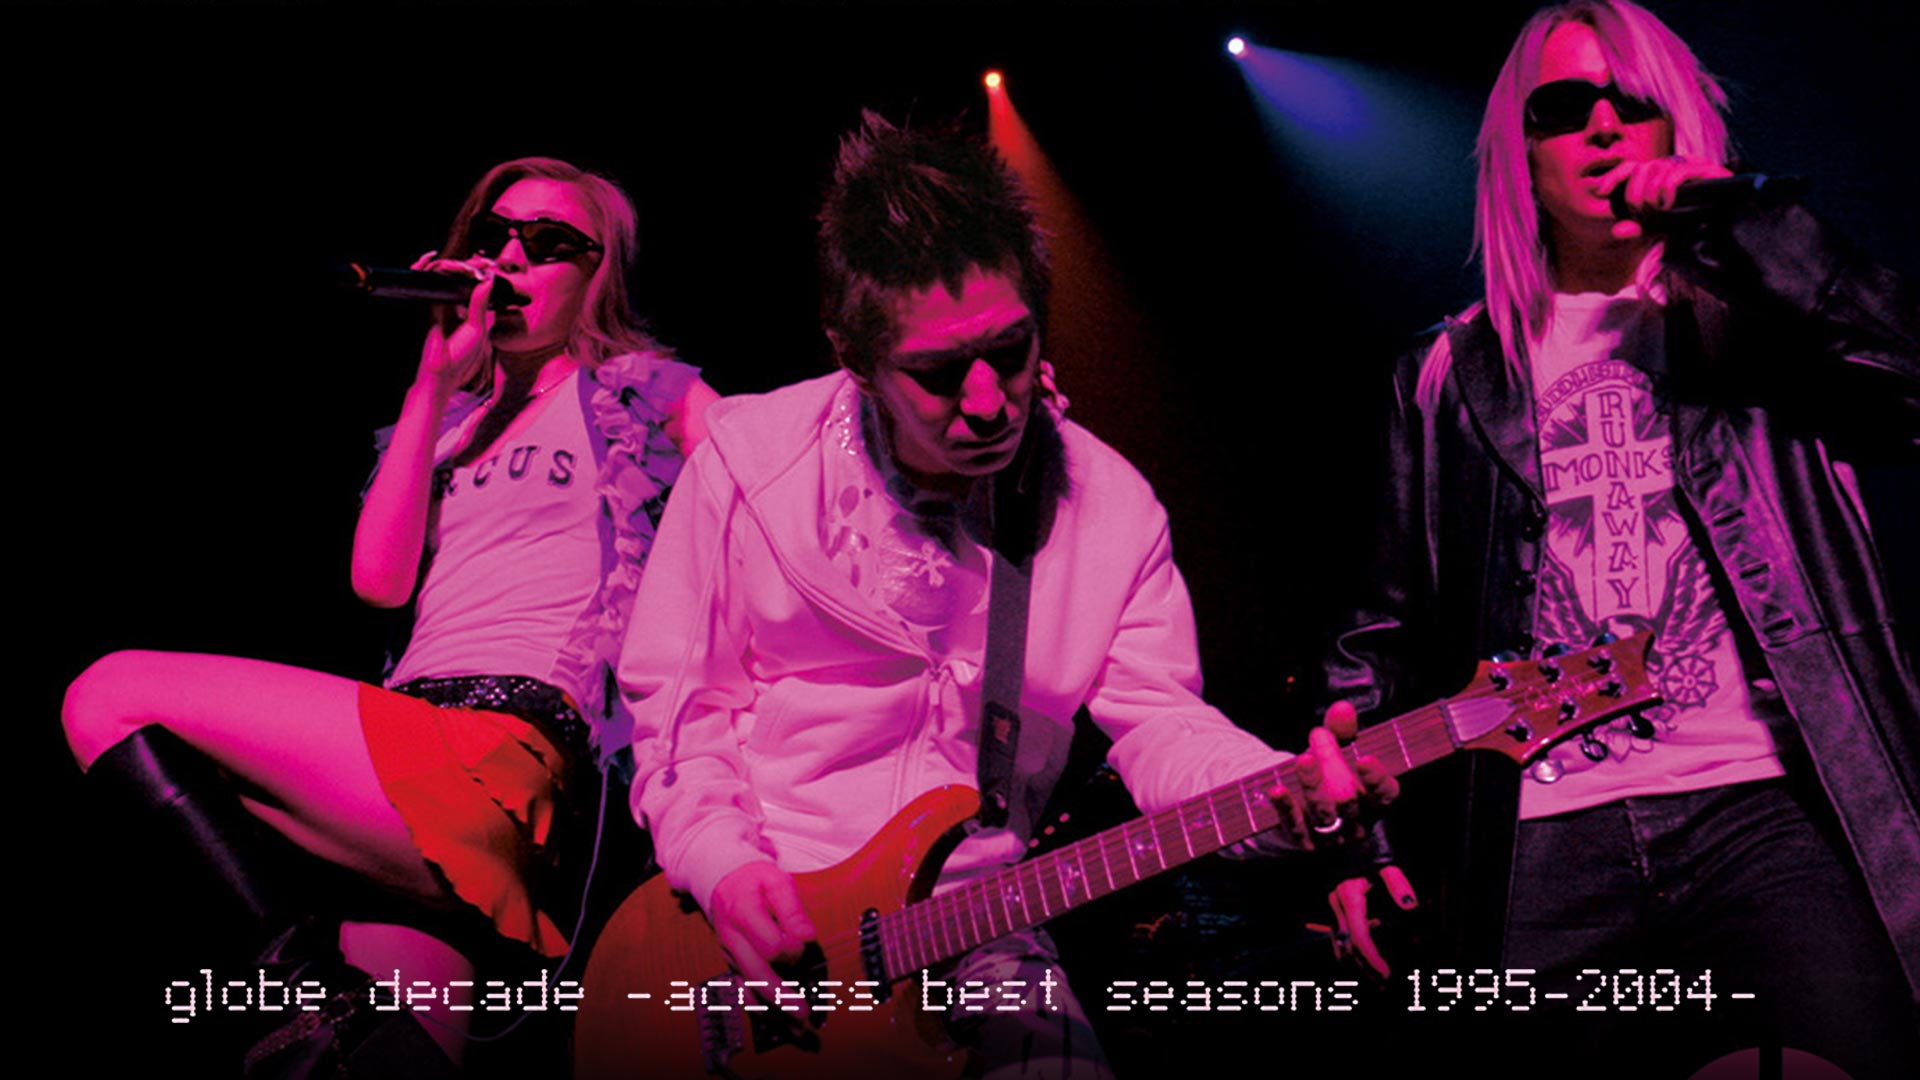 globe decade -access best seasons 1995-2004-